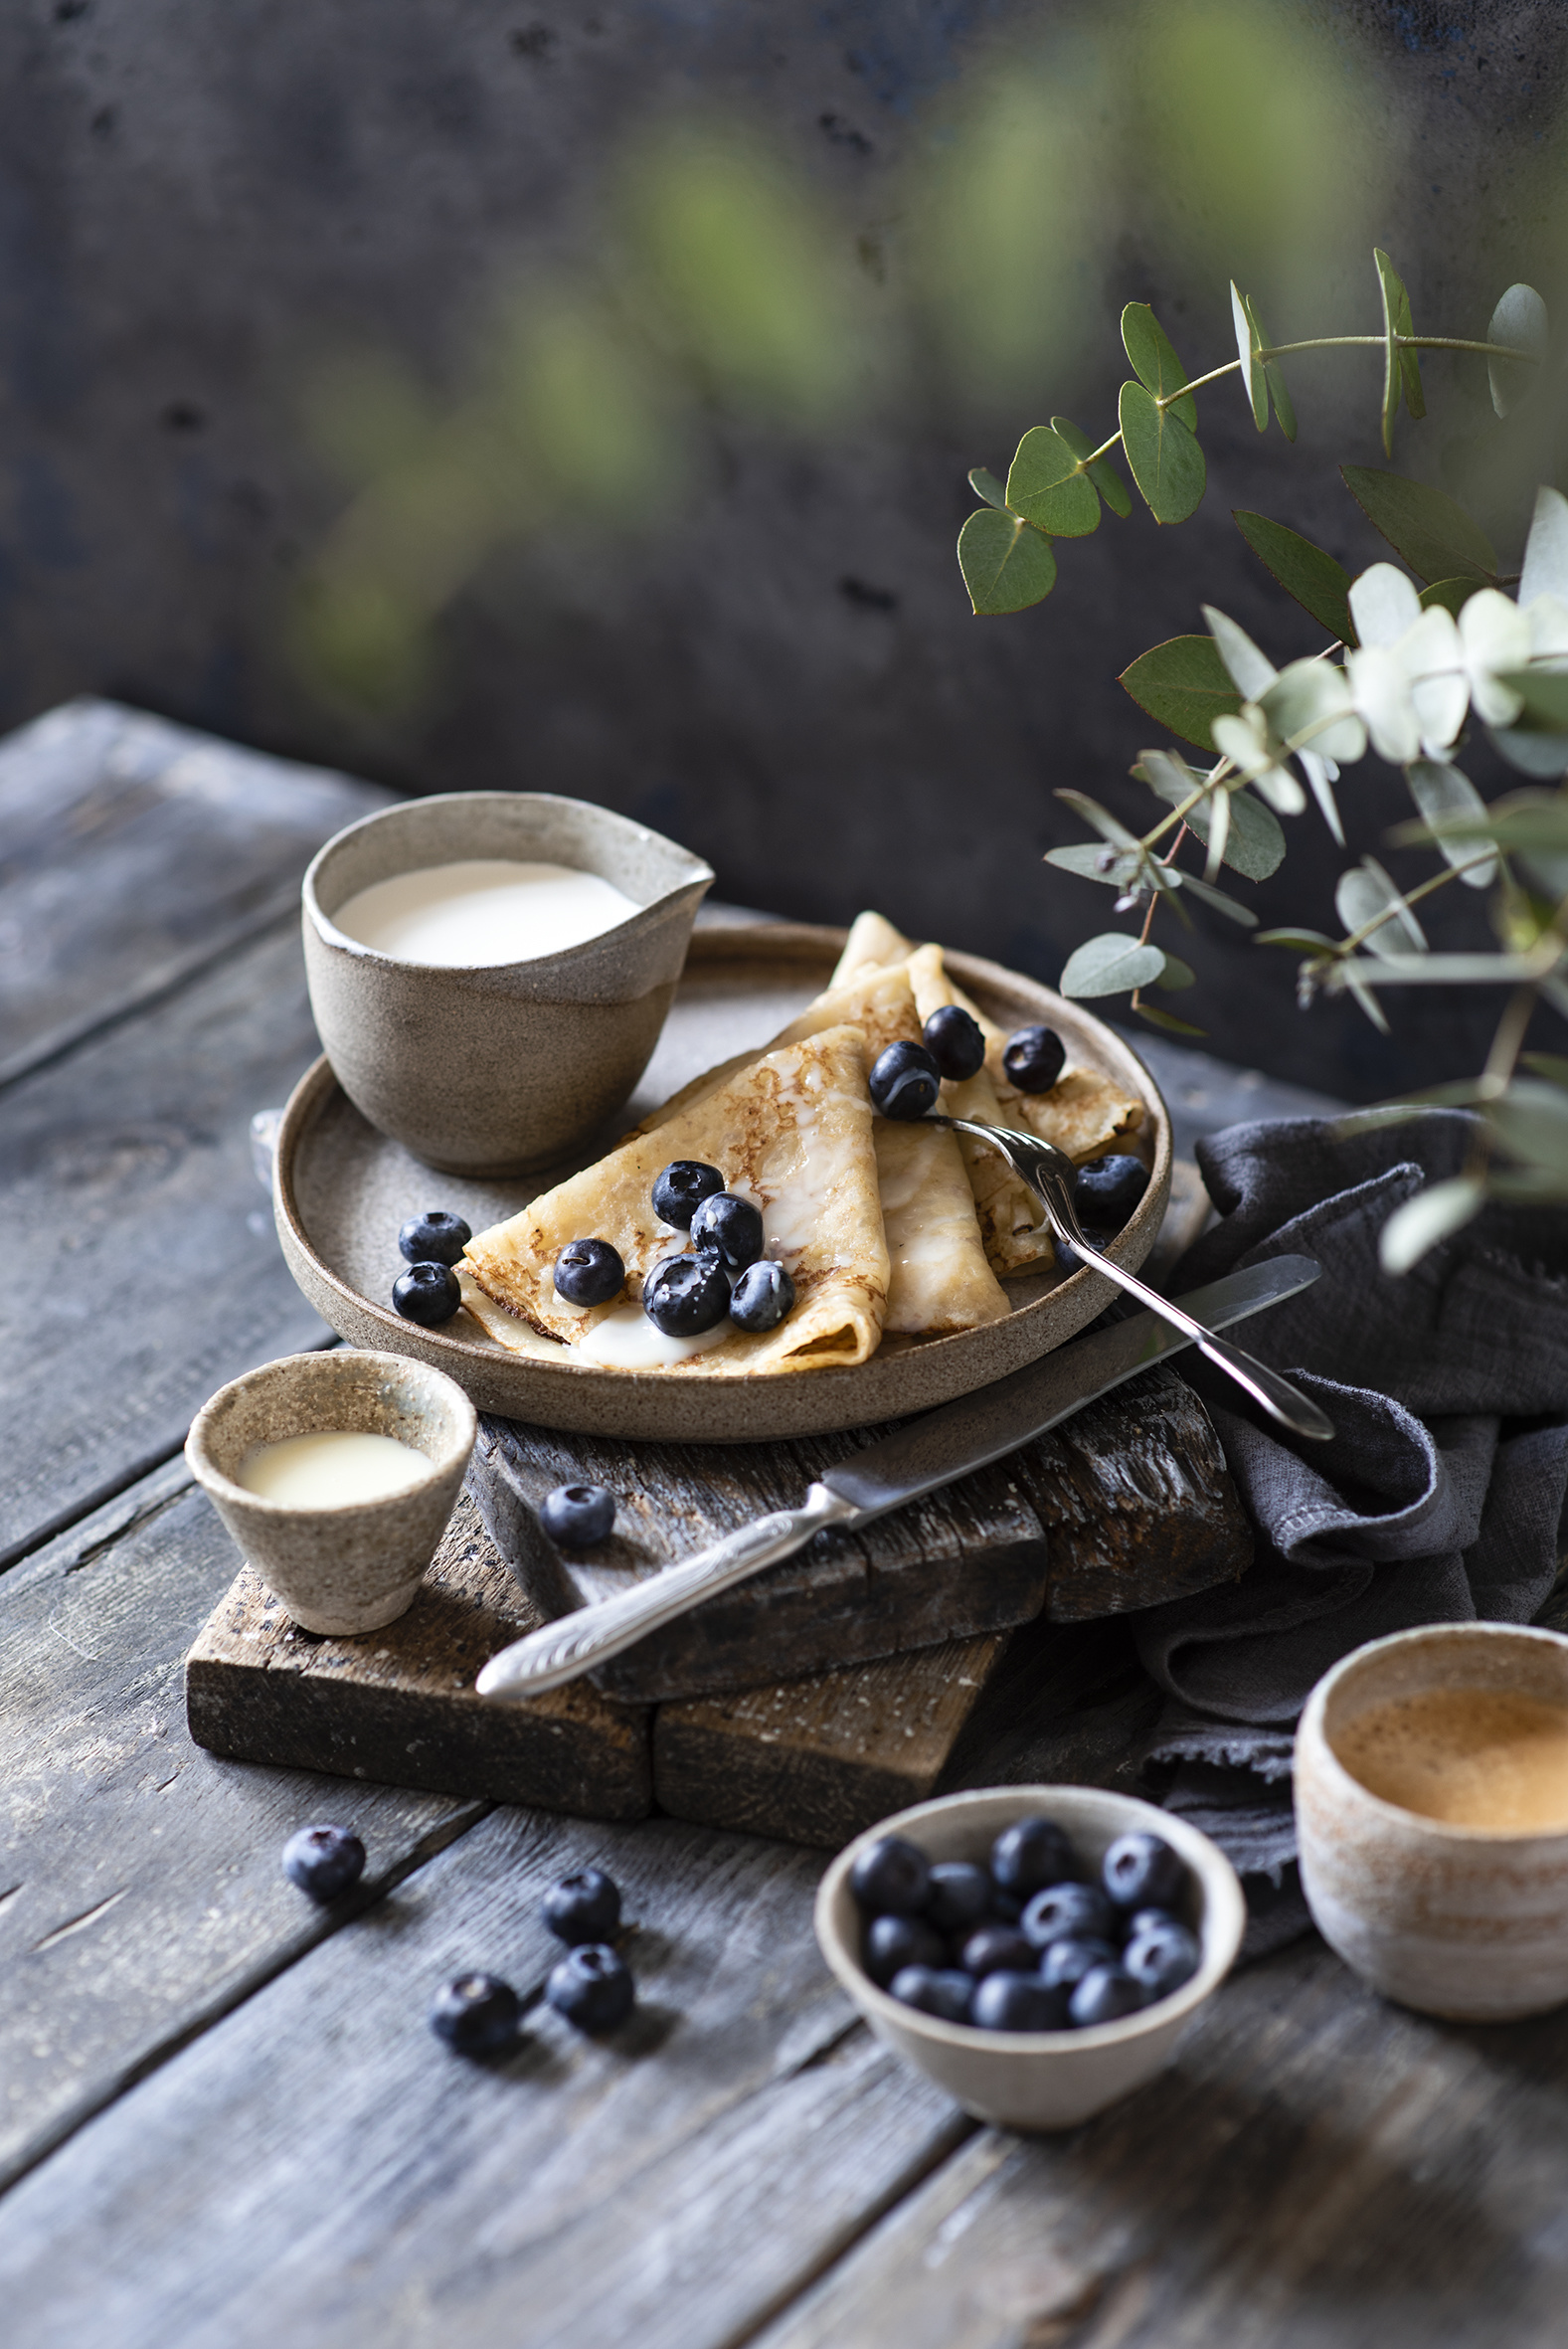 Desktop Wallpapers Milk Knife Coffee Pancake Cappuccino Blueberries Food Wood planks  for Mobile phone hotcake boards